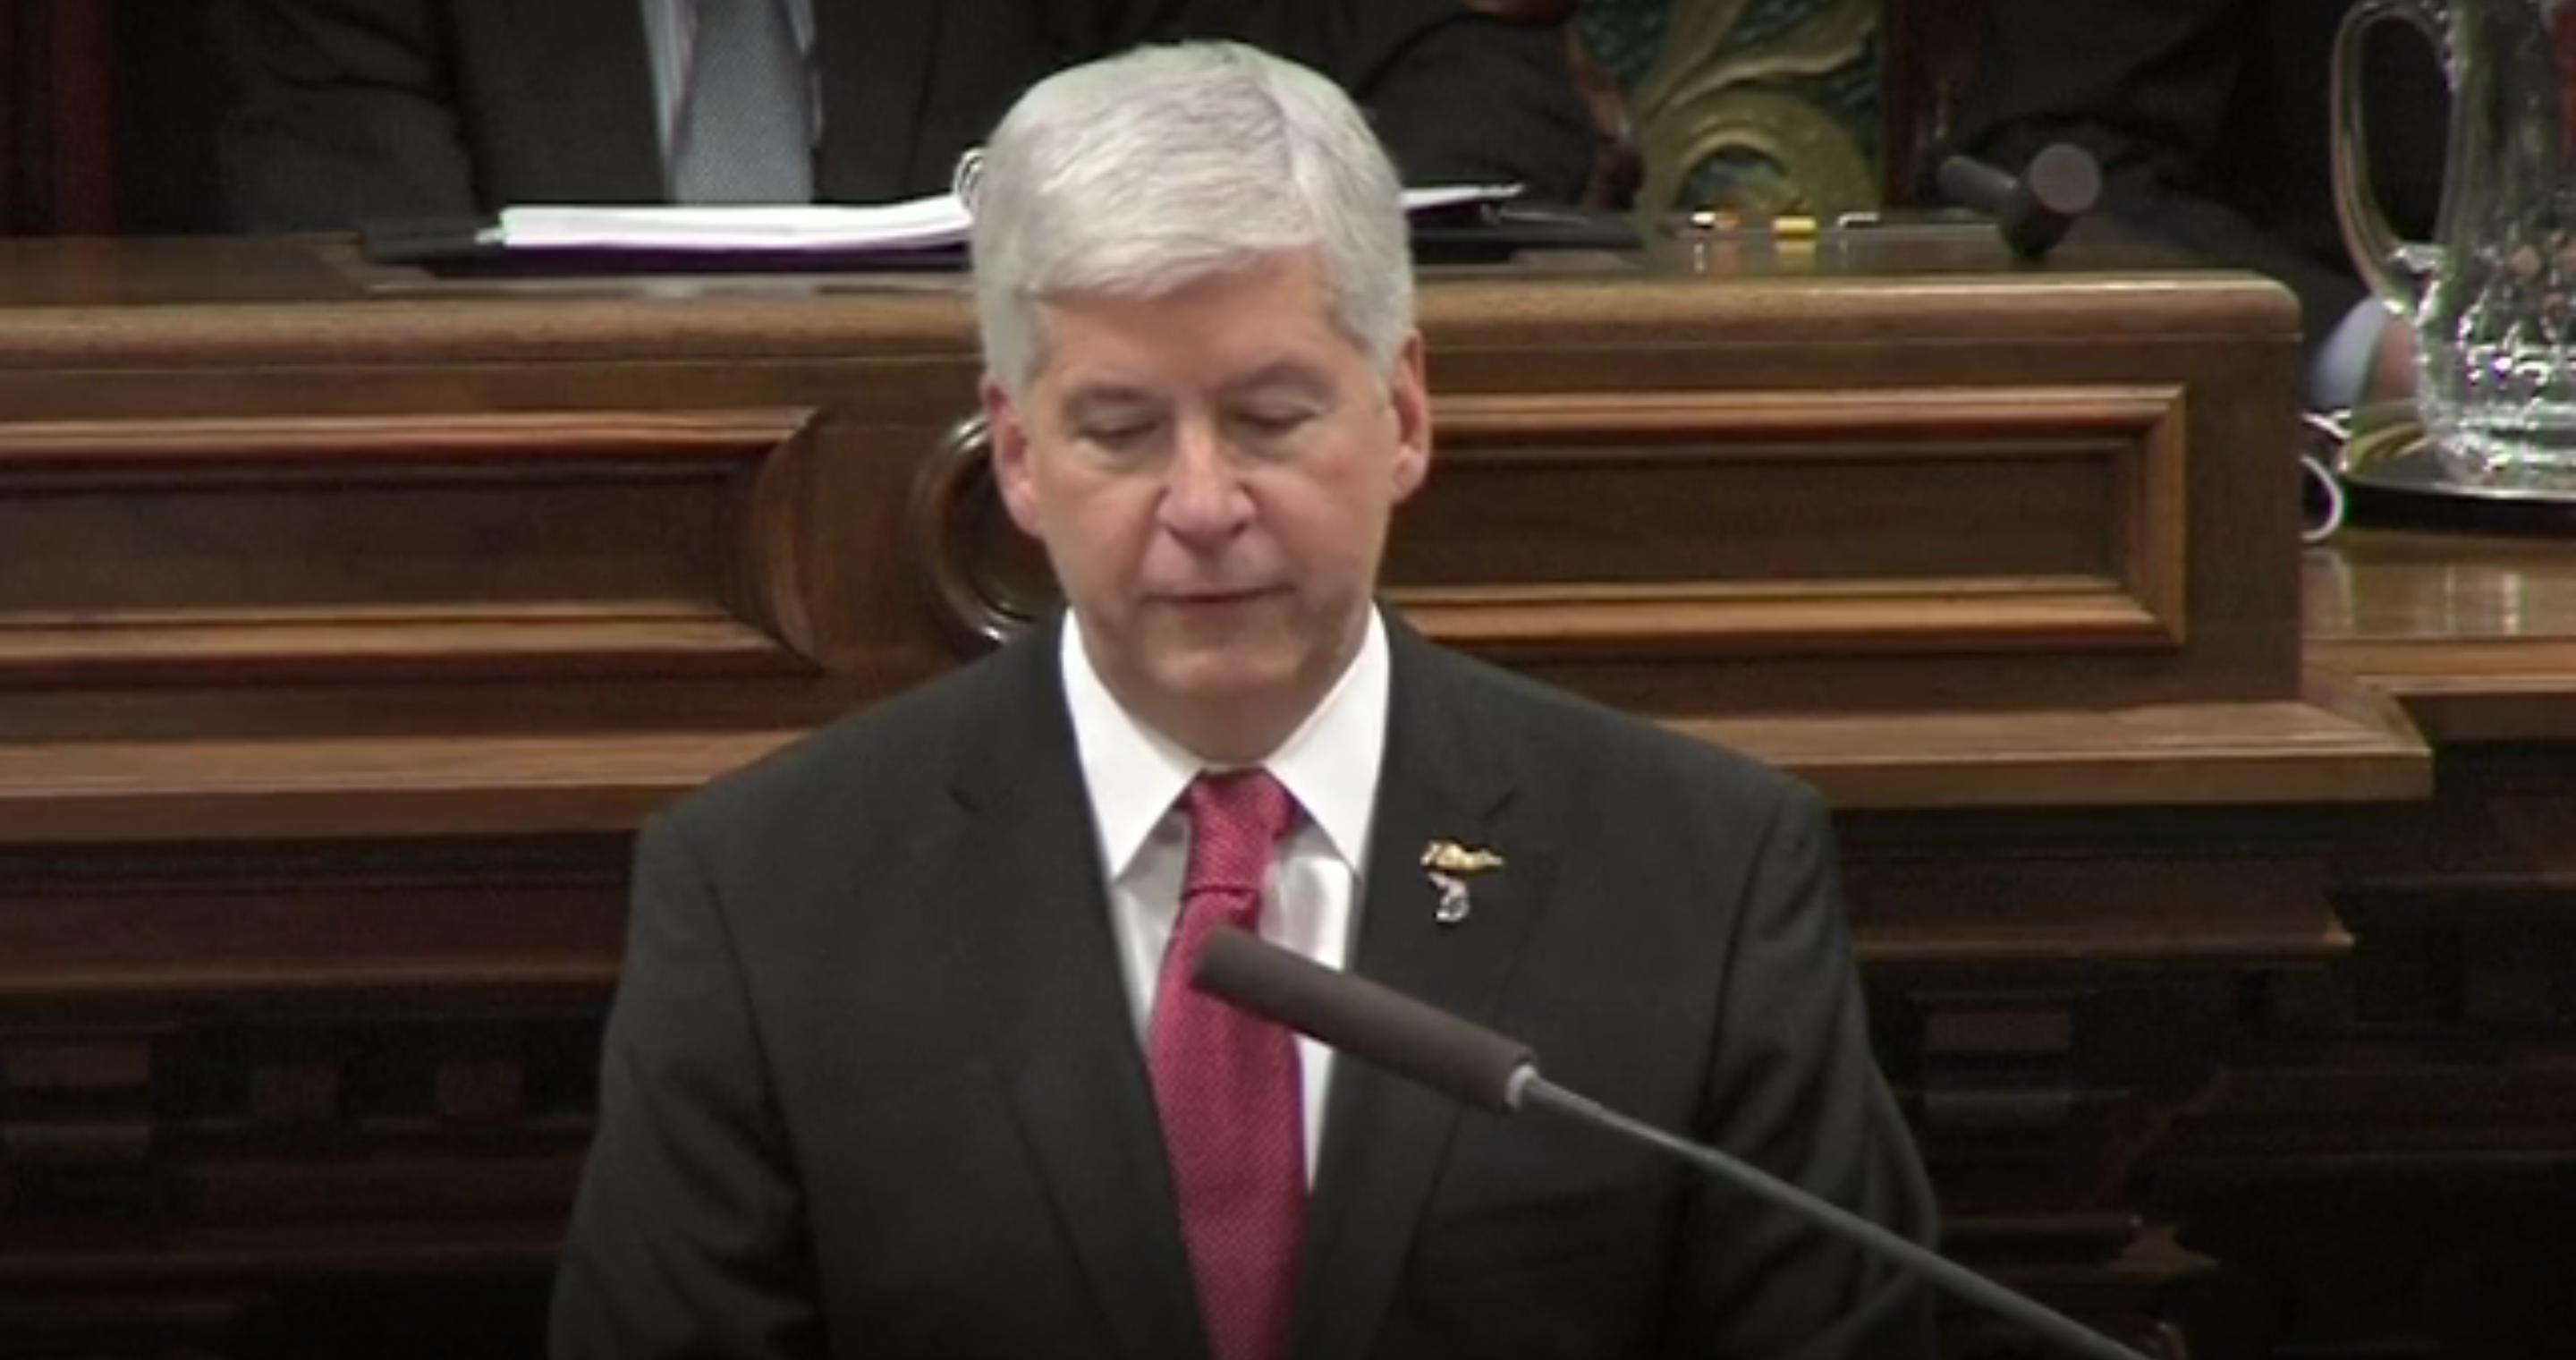 EnviroNews Poll: Is Gov. Snyder's Apology to Flint Worth Its Weight in Air?